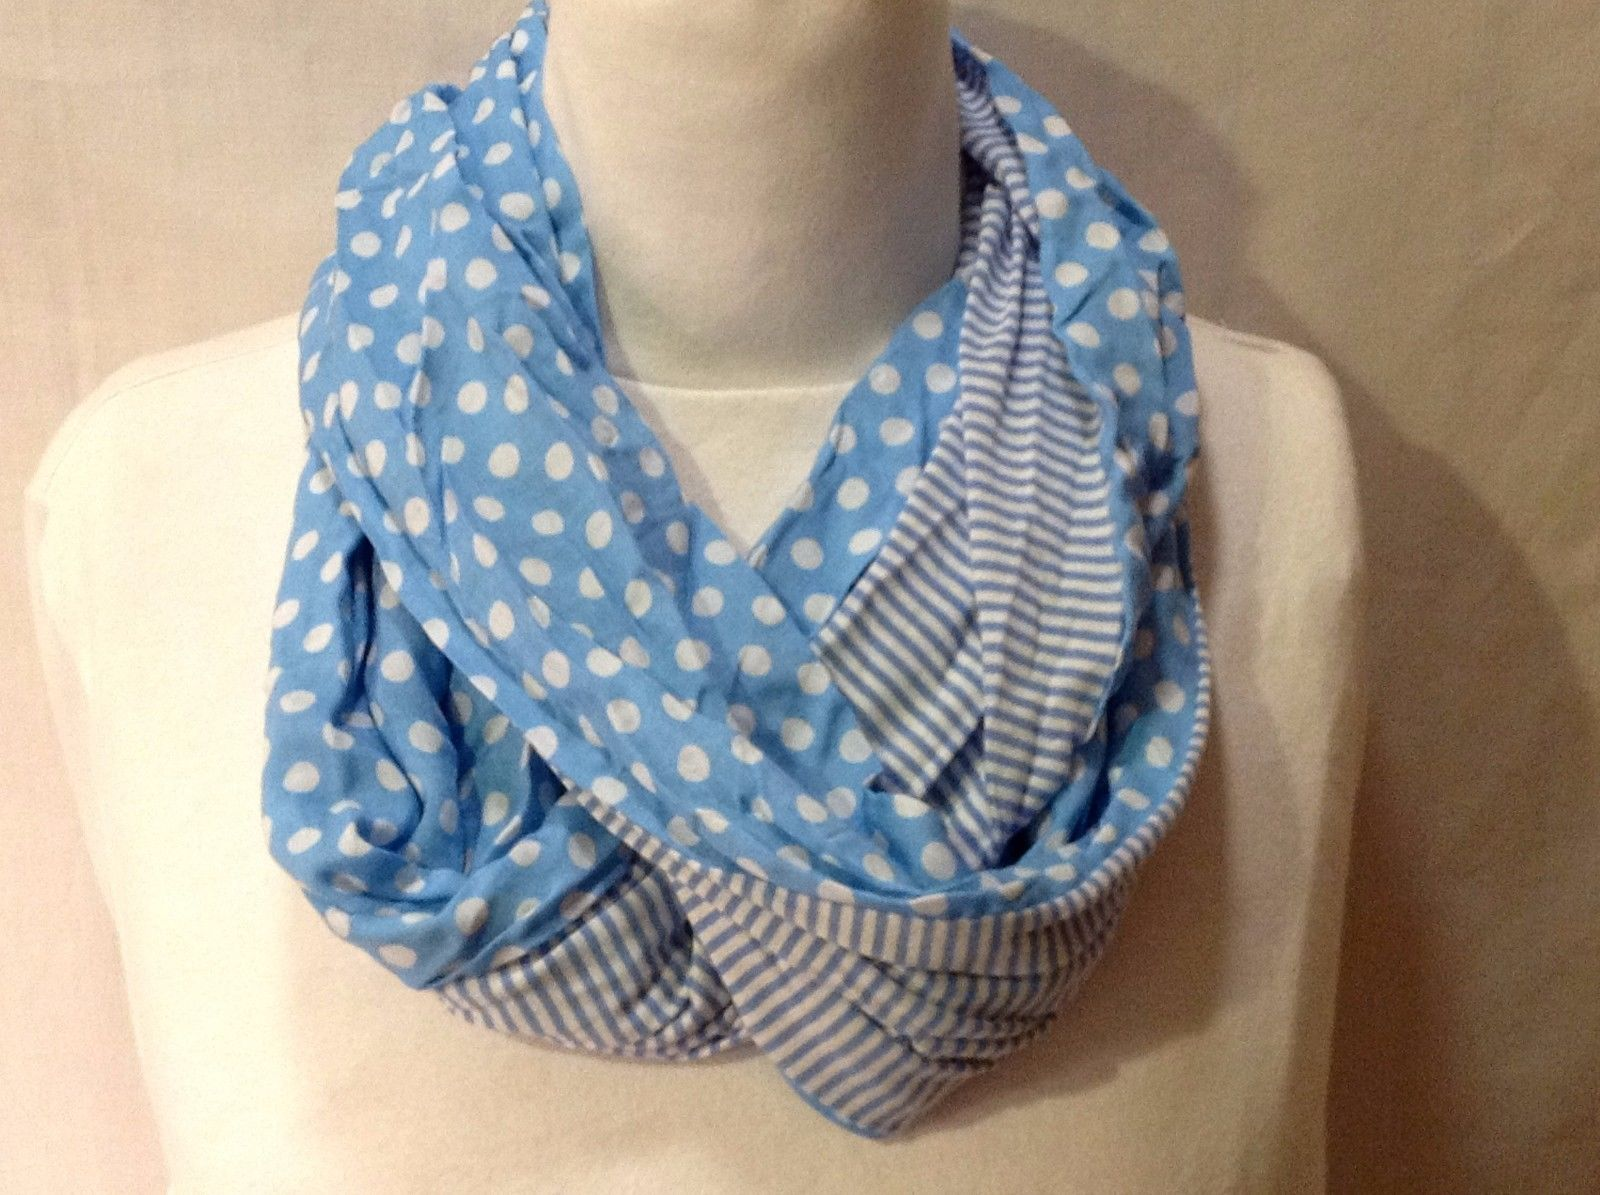 Adorable NWT New With Tags Sky Blue Infinity Scarf Polka Dot Striped White